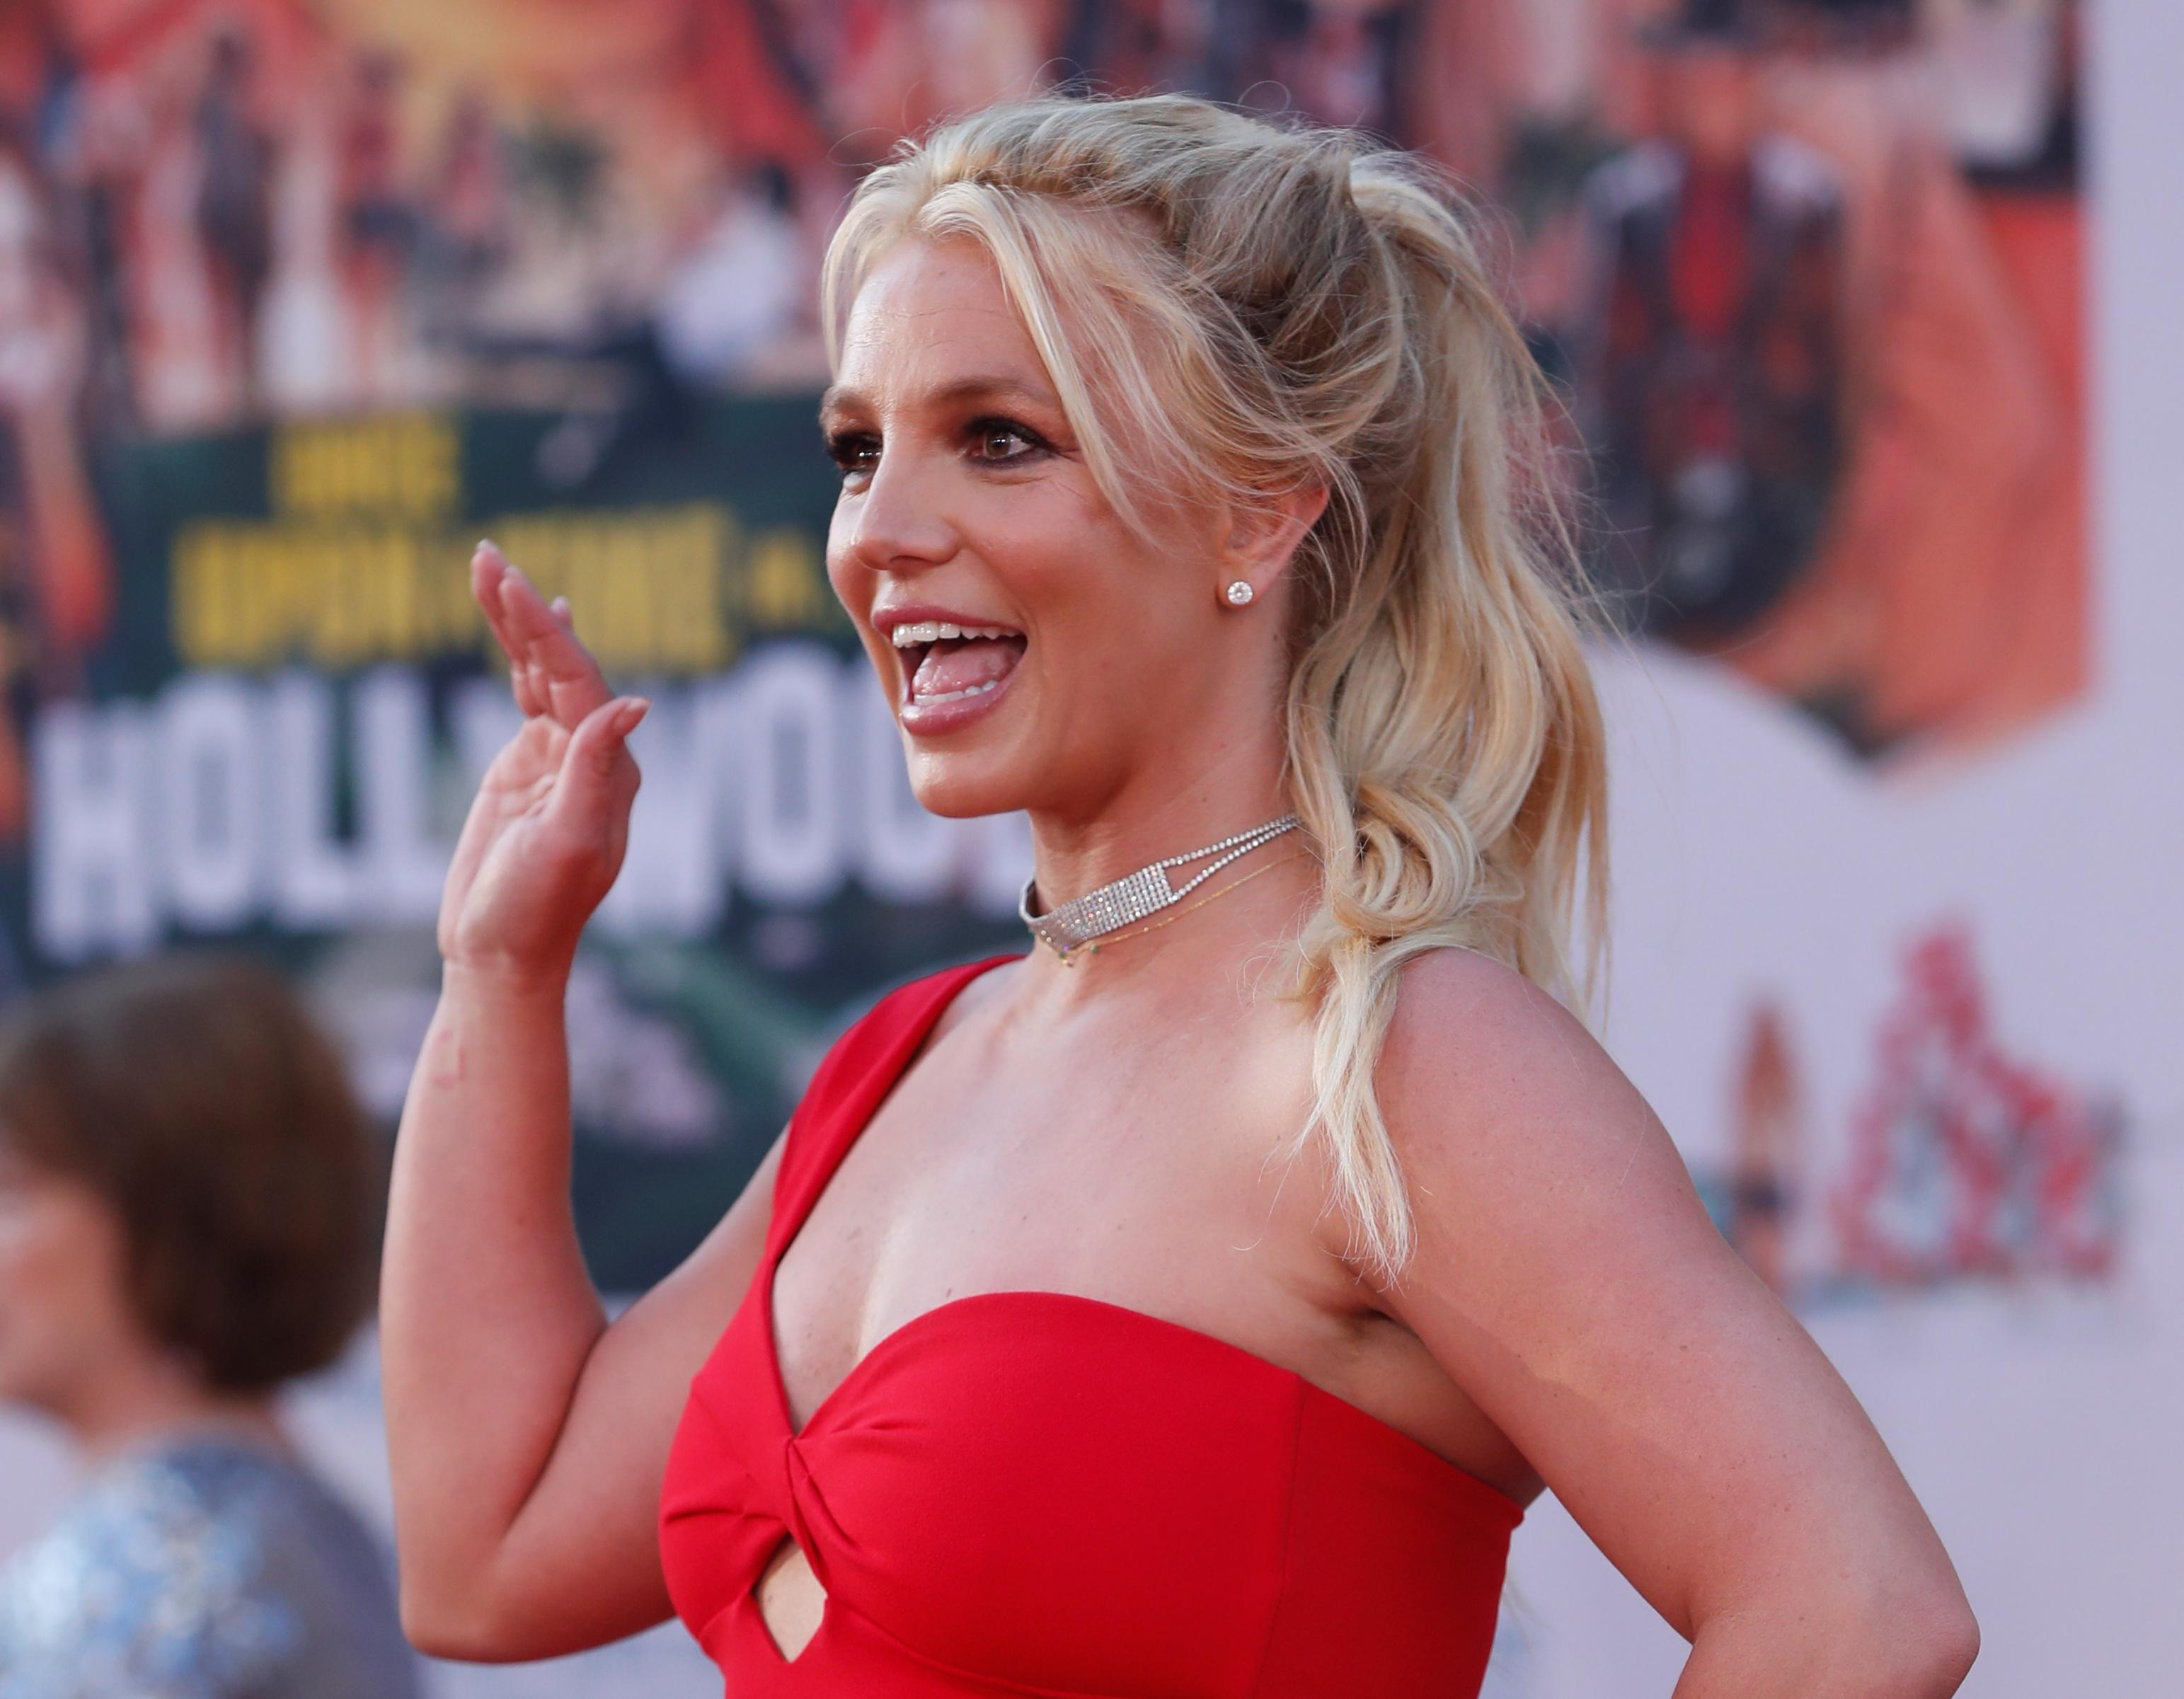 Britney Spears Considers Having Matching Dice Tattoo With Ex Kevin Federline Removed